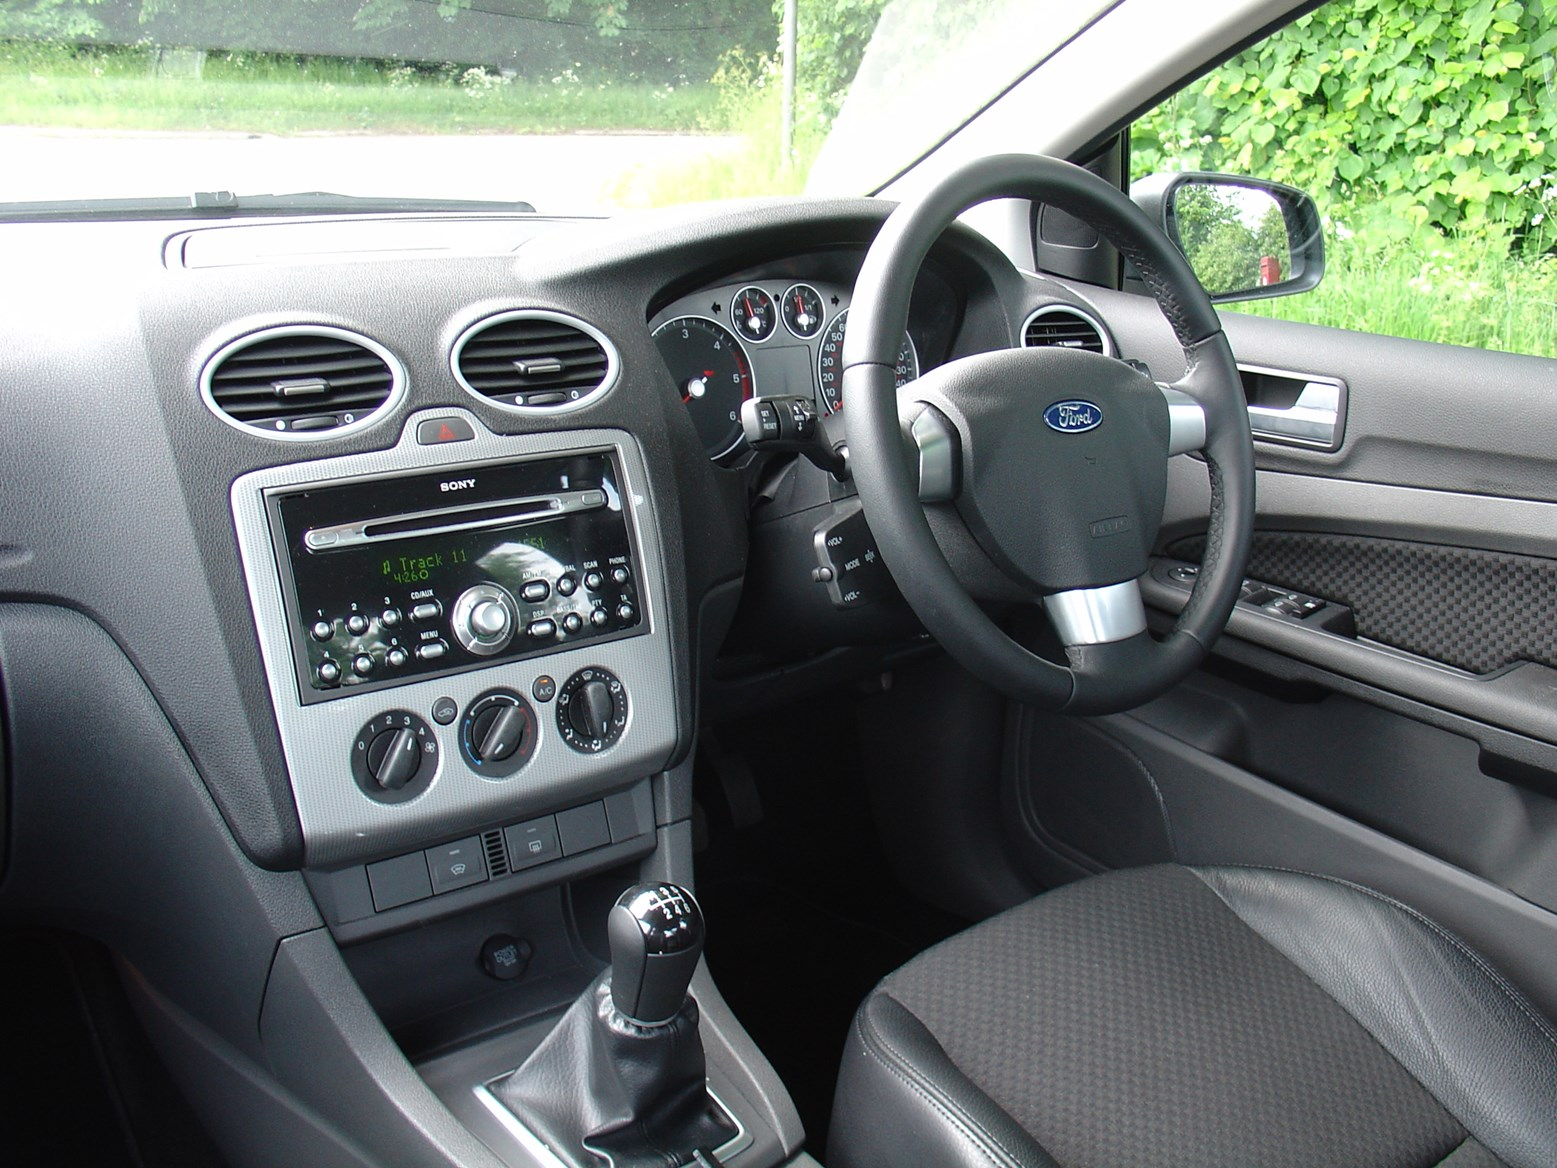 Ford Focus Mk2 Interior Accessories